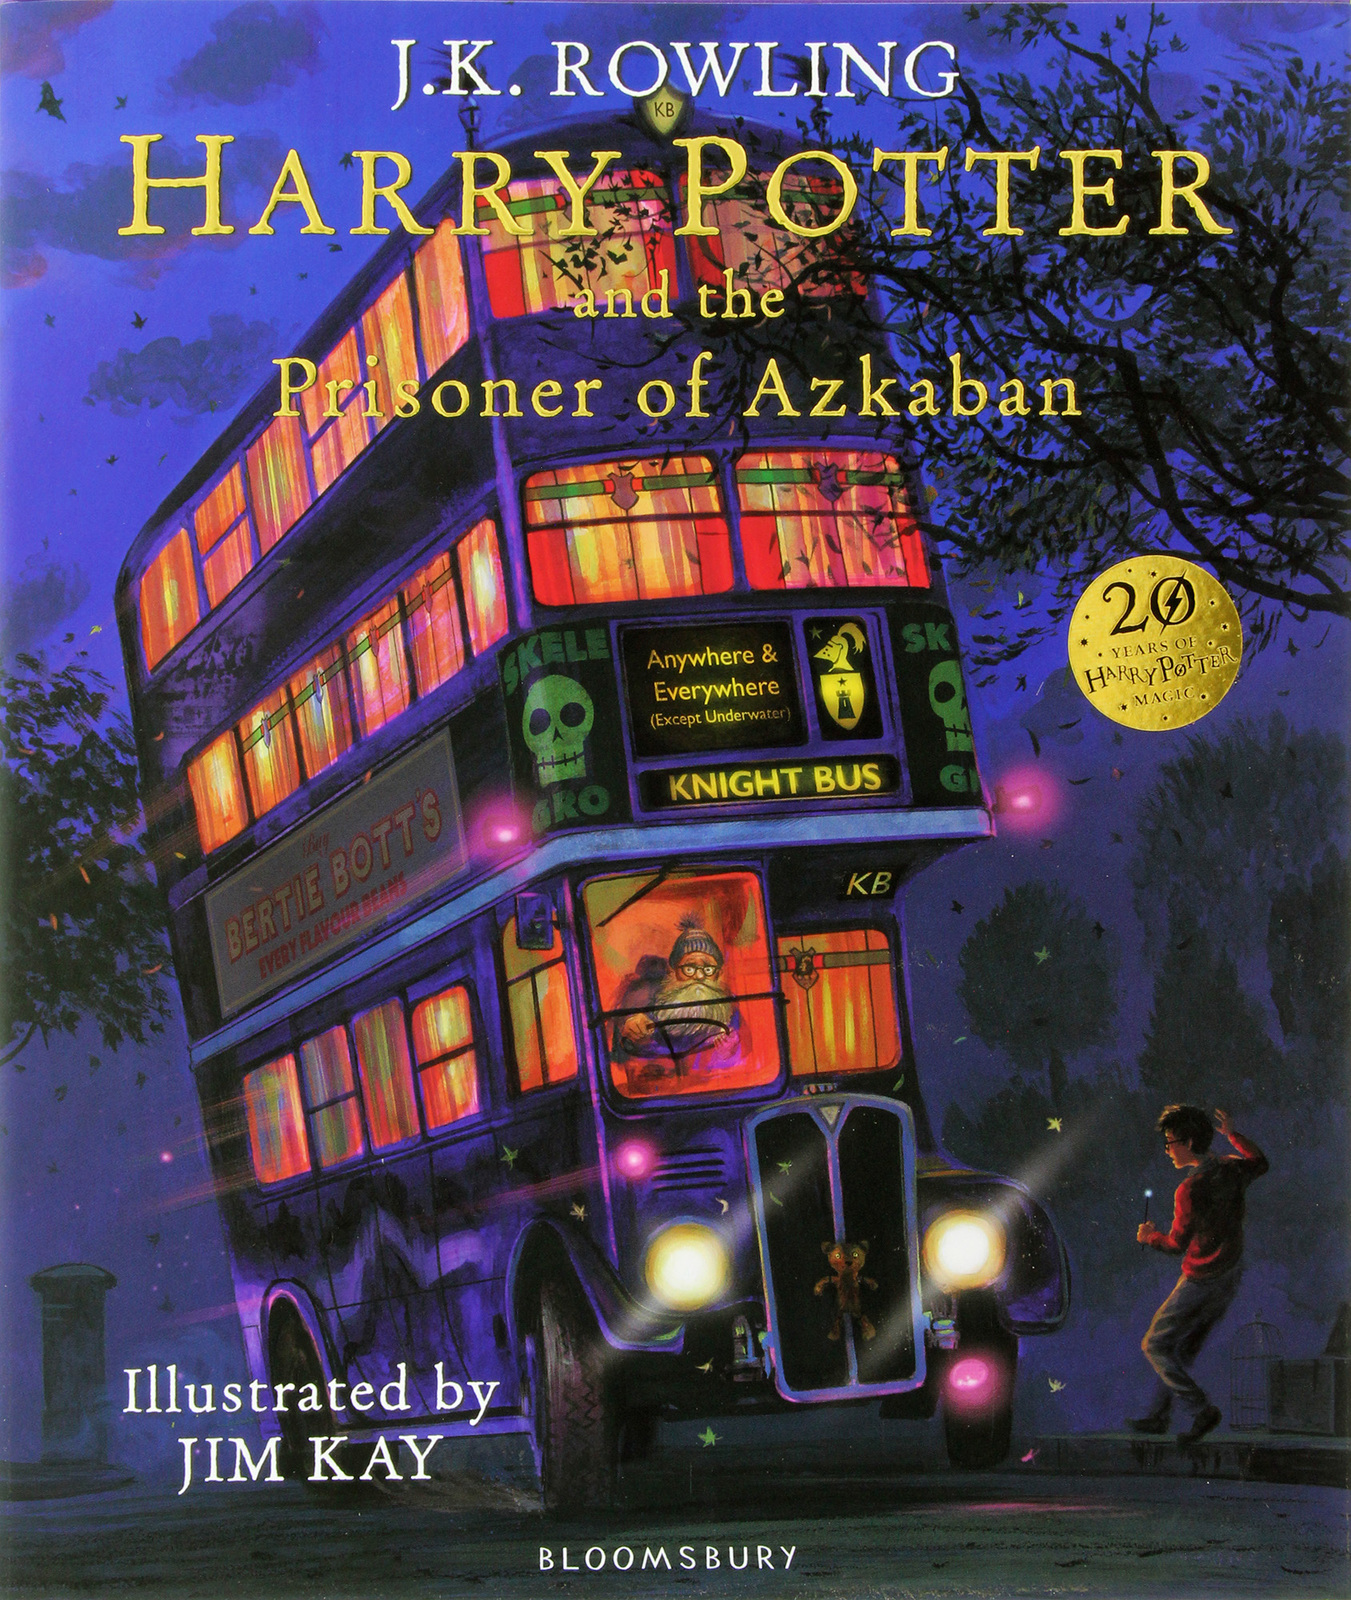 Harry Potter and the Prisoner of Azkaban by J.K. Rowling image